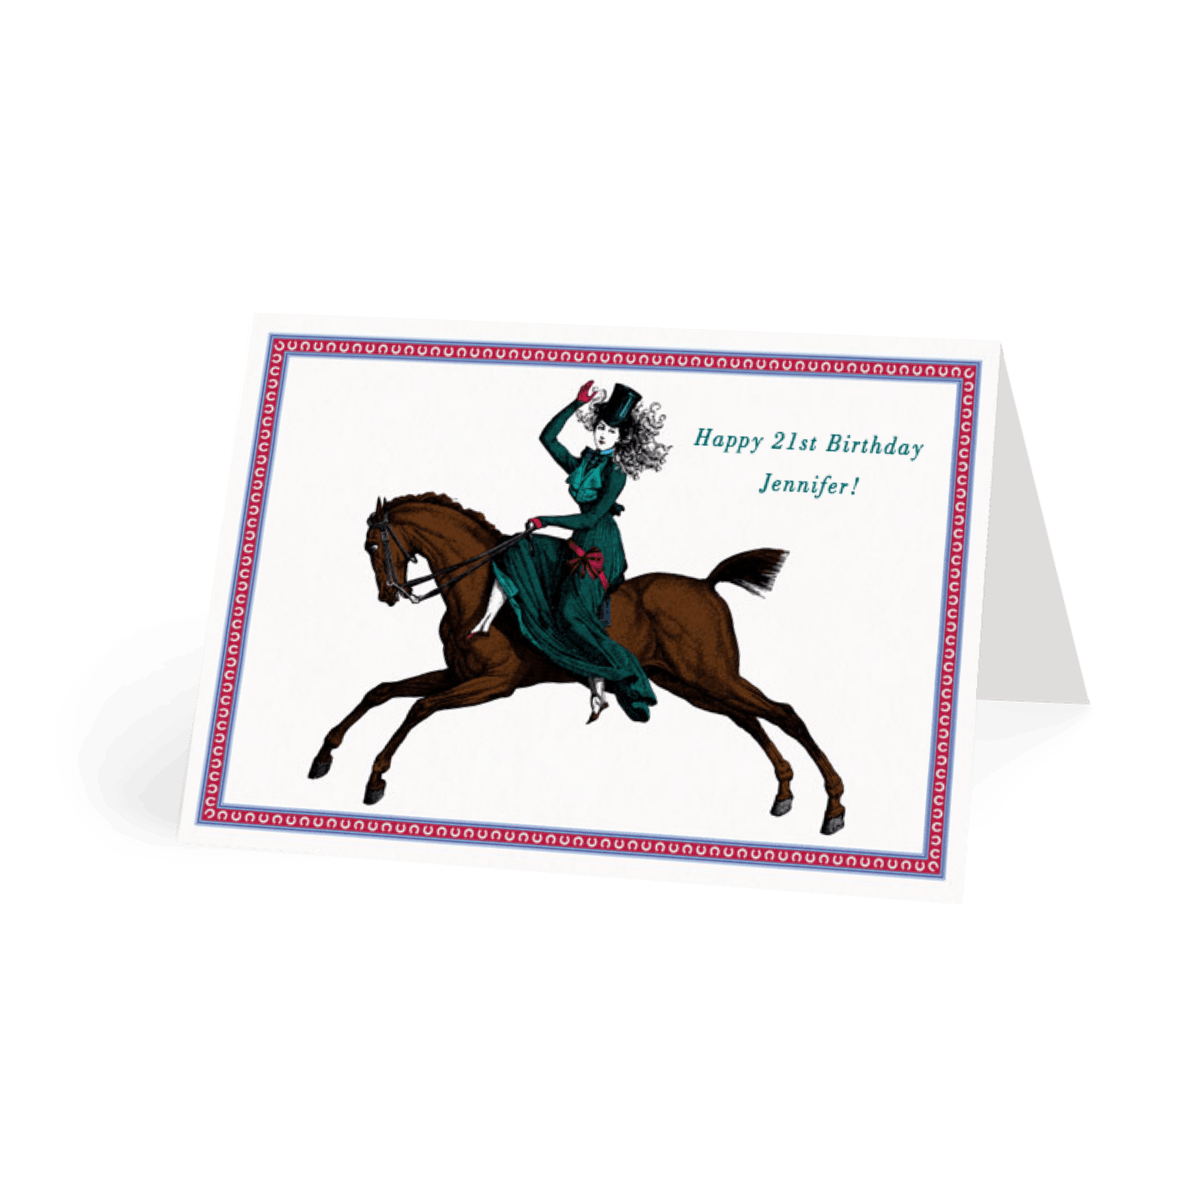 Https%3a%2f%2fwww.papier.com%2fproduct image%2f13074%2f14%2flady on her horse 3297 vorderseite 1480609963.png?ixlib=rb 1.1